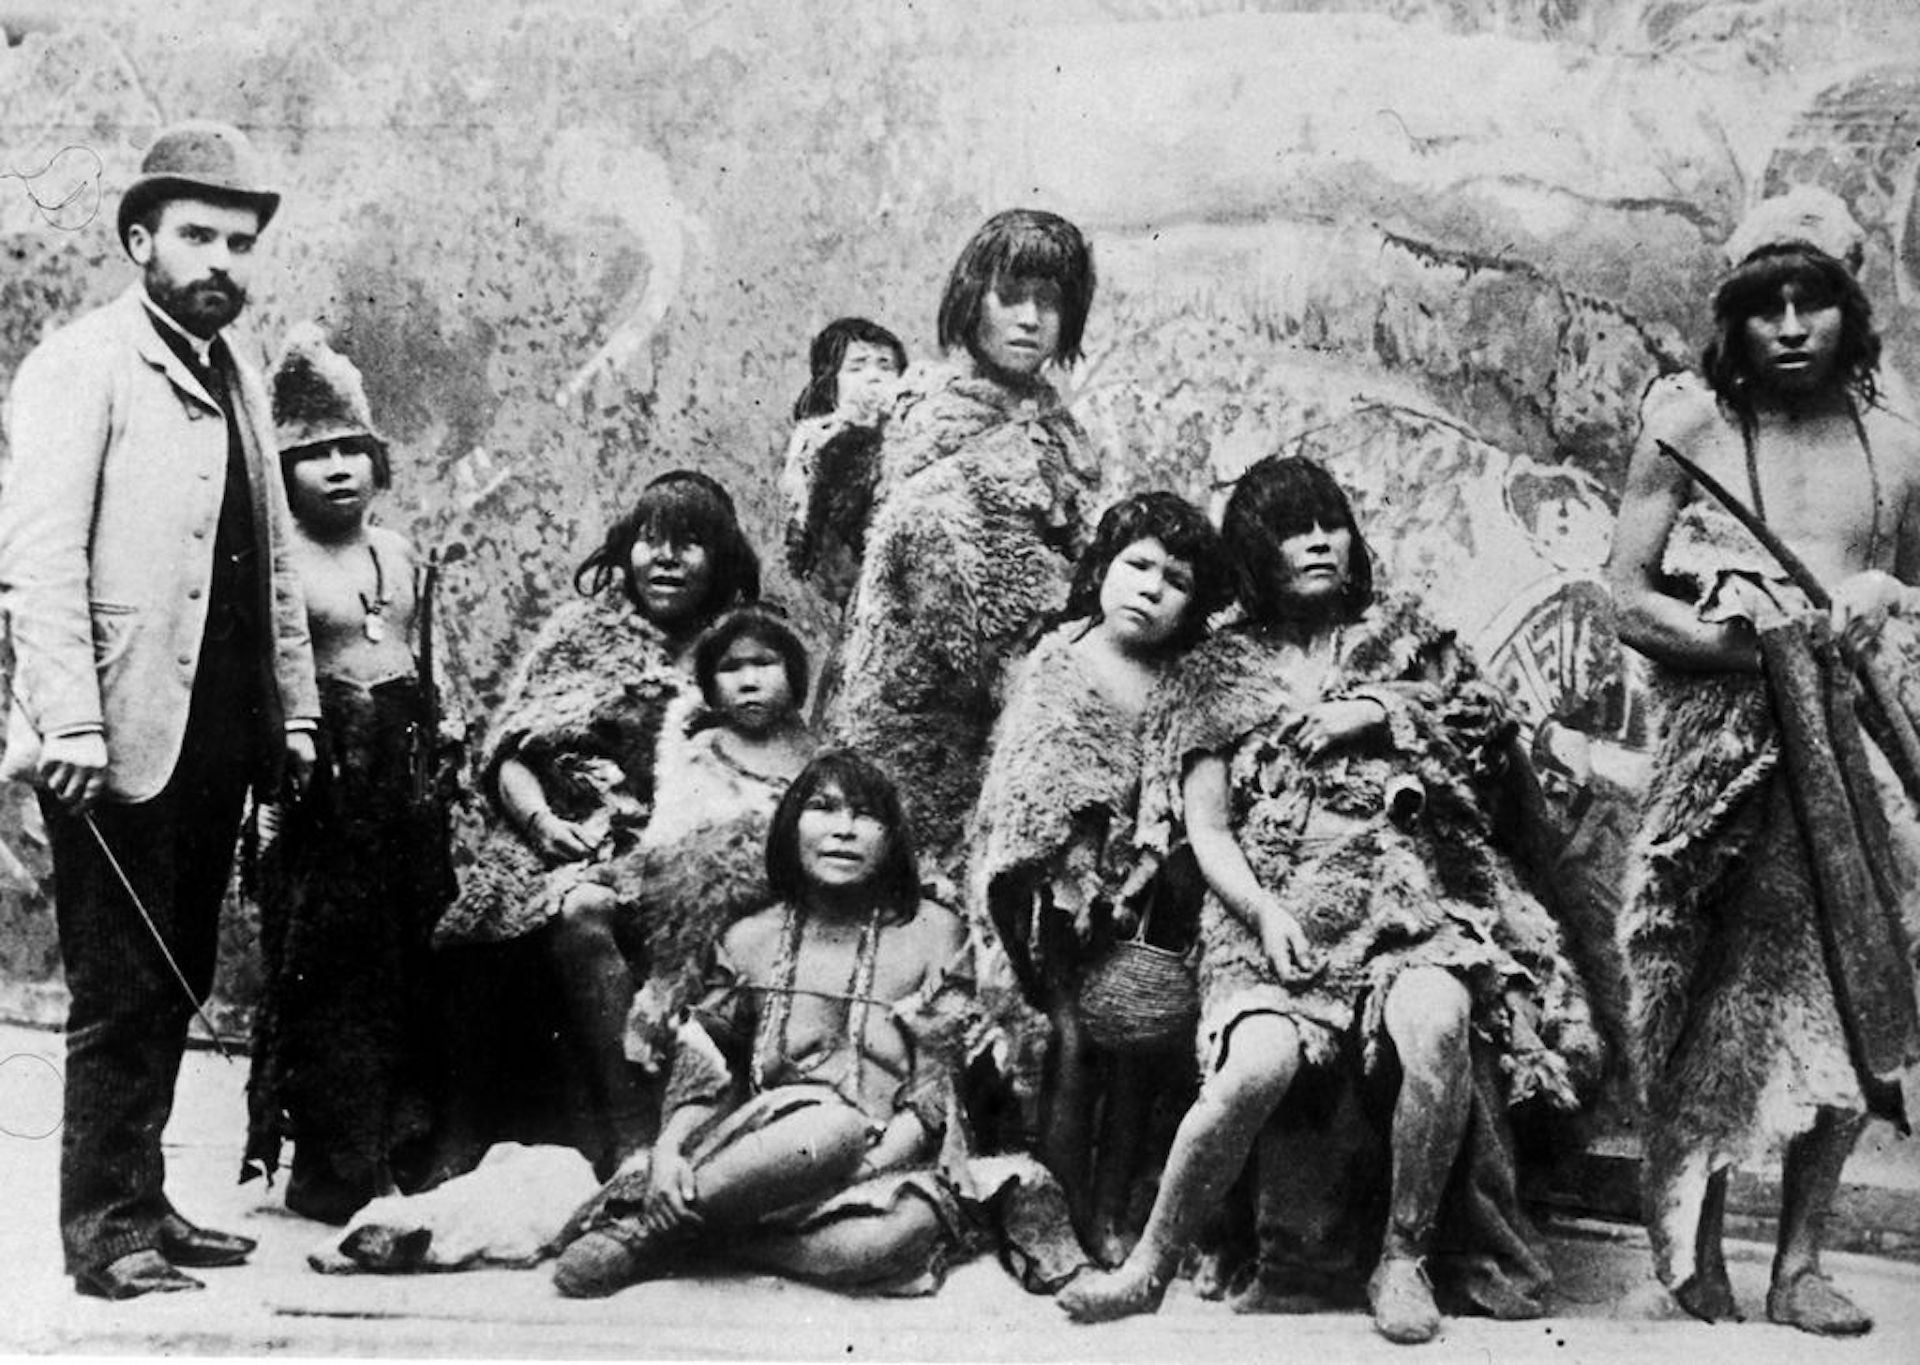 """""""In 1889, Belgian Maurice Maitre kidnapped a family of Selk'nam people, whom he took in chains to be exhibited in Europe like animals. Of the 11, two died on the trip. In Paris, they were presented behind bars as alleged cannibals; every afternoon the public threw raw horse meat at them. They were kept dirty, so that they had the appearance of savages. Given the inhumane conditions of the exhibition, the Missionary Society began demanding the family's release. So Maitre took them to Brussels, where they were imprisoned and then deported to England. From there the family embarked for Tierra del Fuego. Of the 11, six made it home according to Chilean authorities."""" Photo © Adolfo Kwasny c. 1889, in the public domain"""